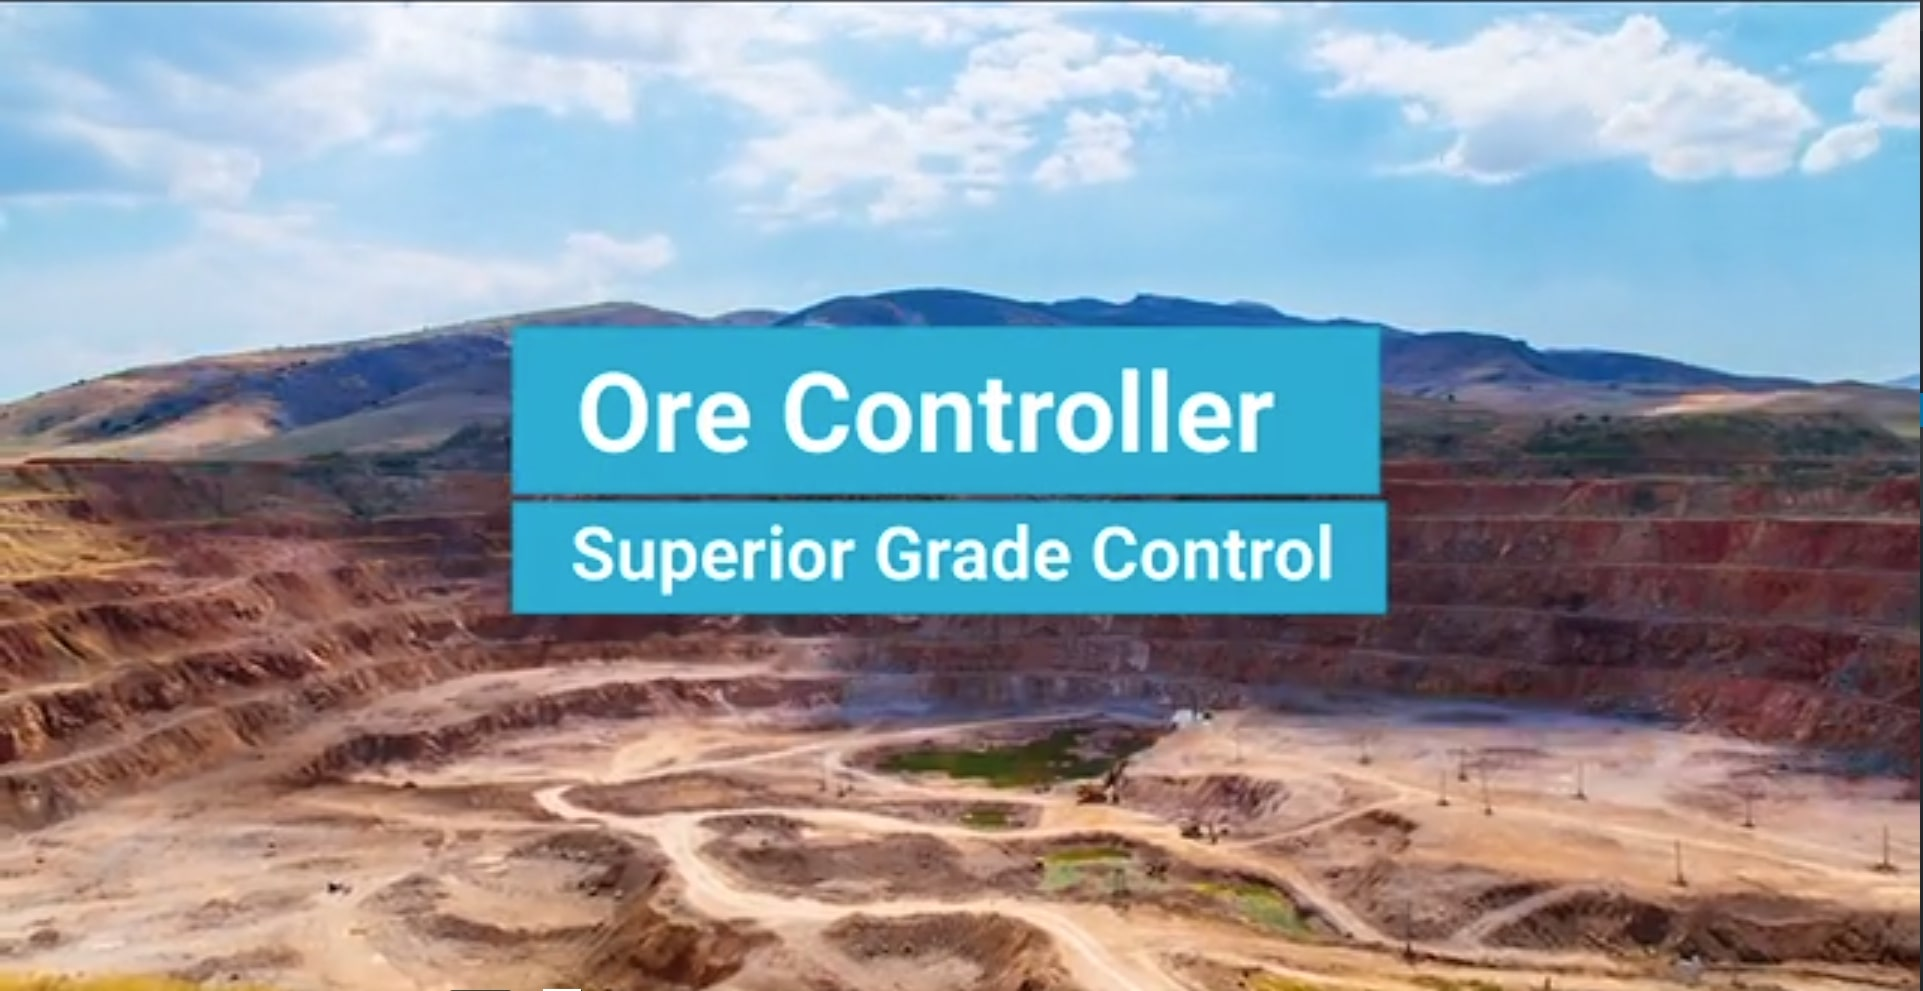 The title screen of the Ore Controller overview video with the words - 'Ore Controller, Superior Grade Control' - Ore Control Software